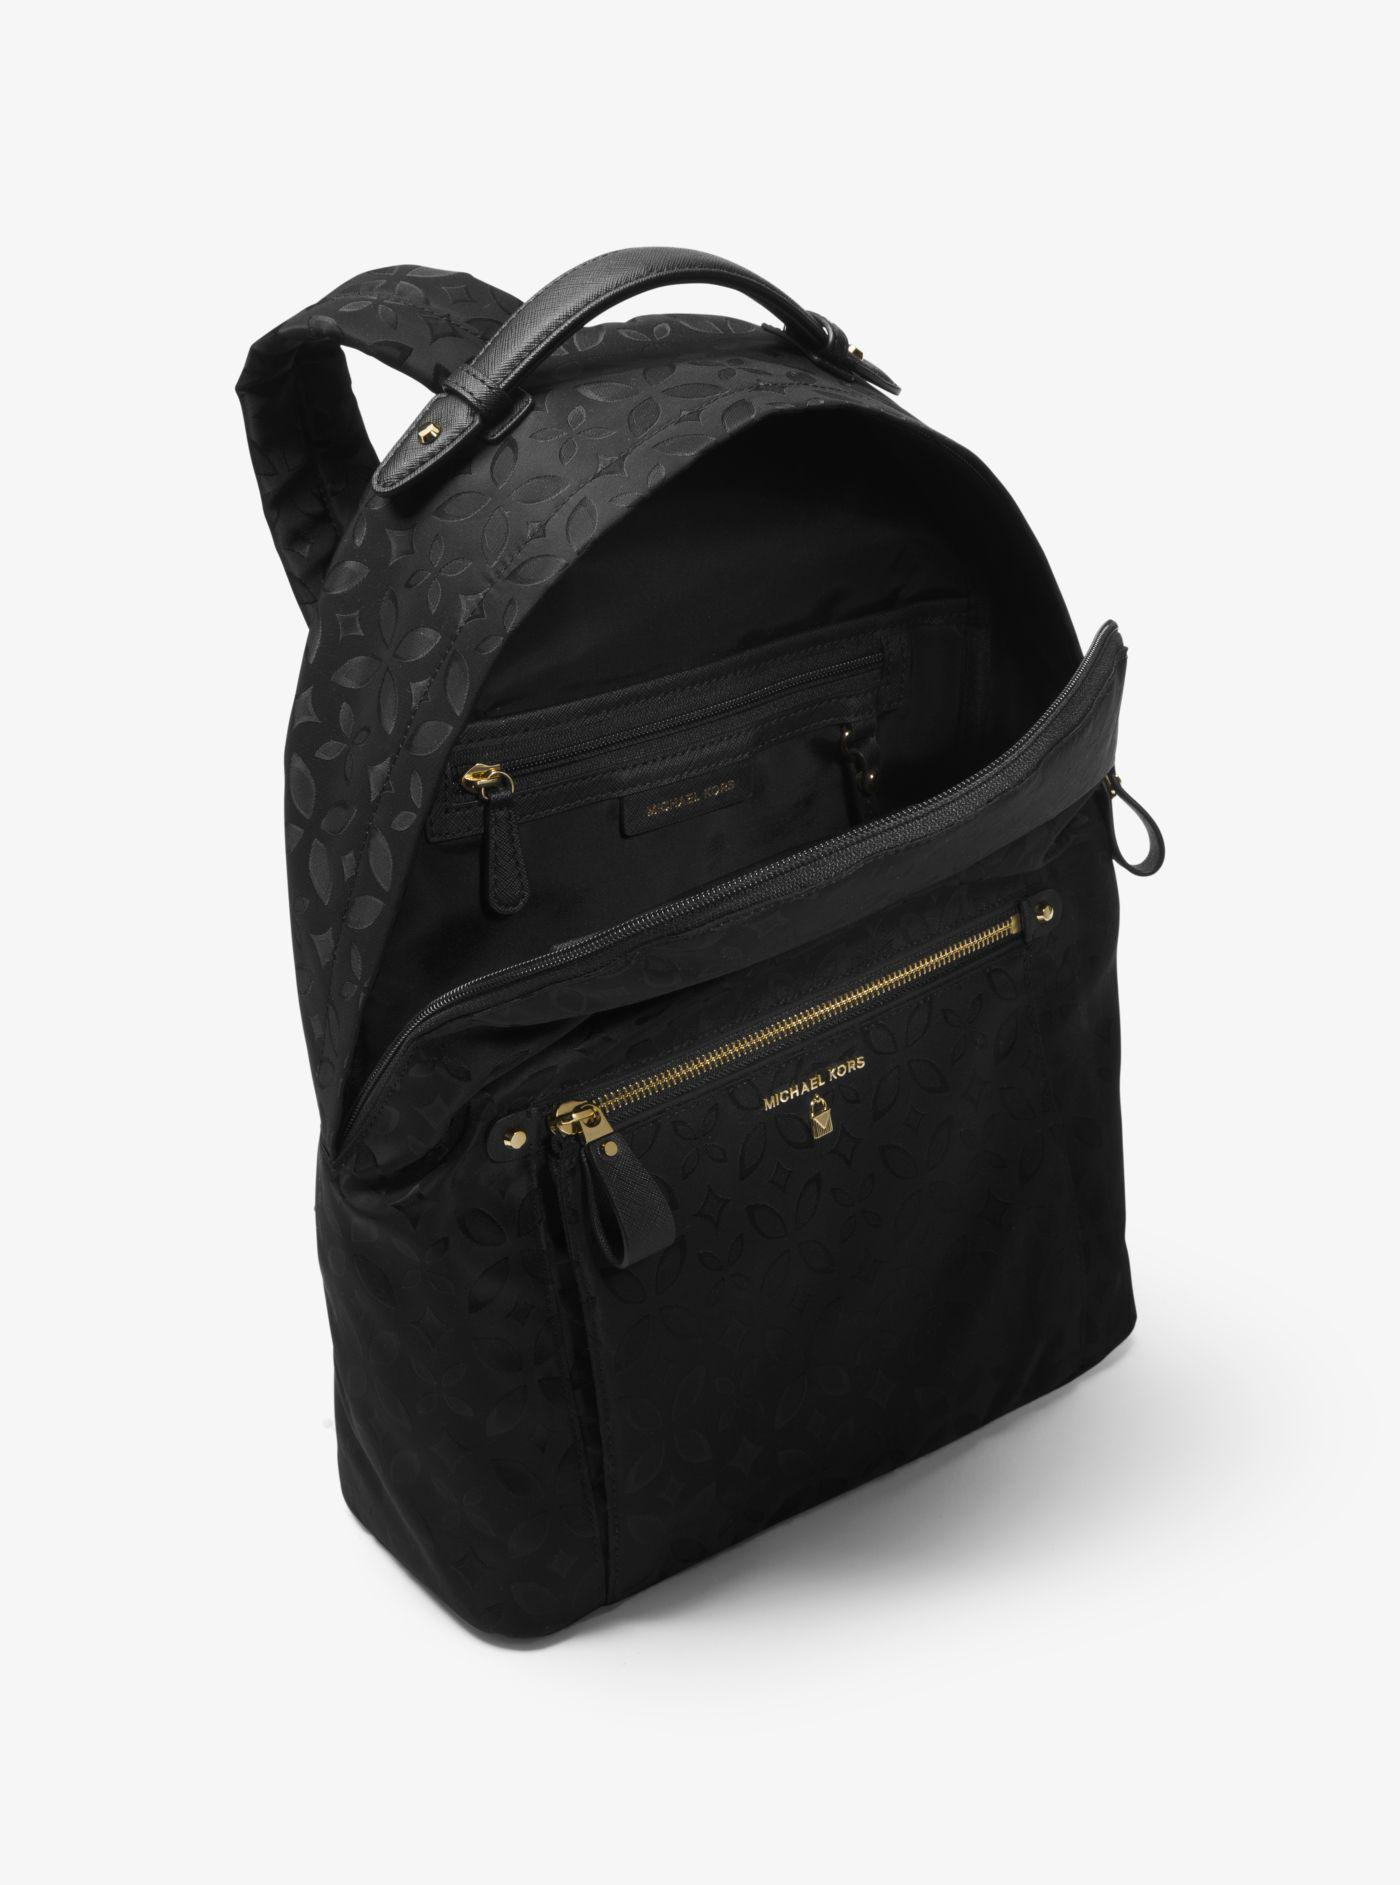 Lyst - Michael Kors Michael Nylon Kelsey Signature Backpack in Black da5450da8bbf3